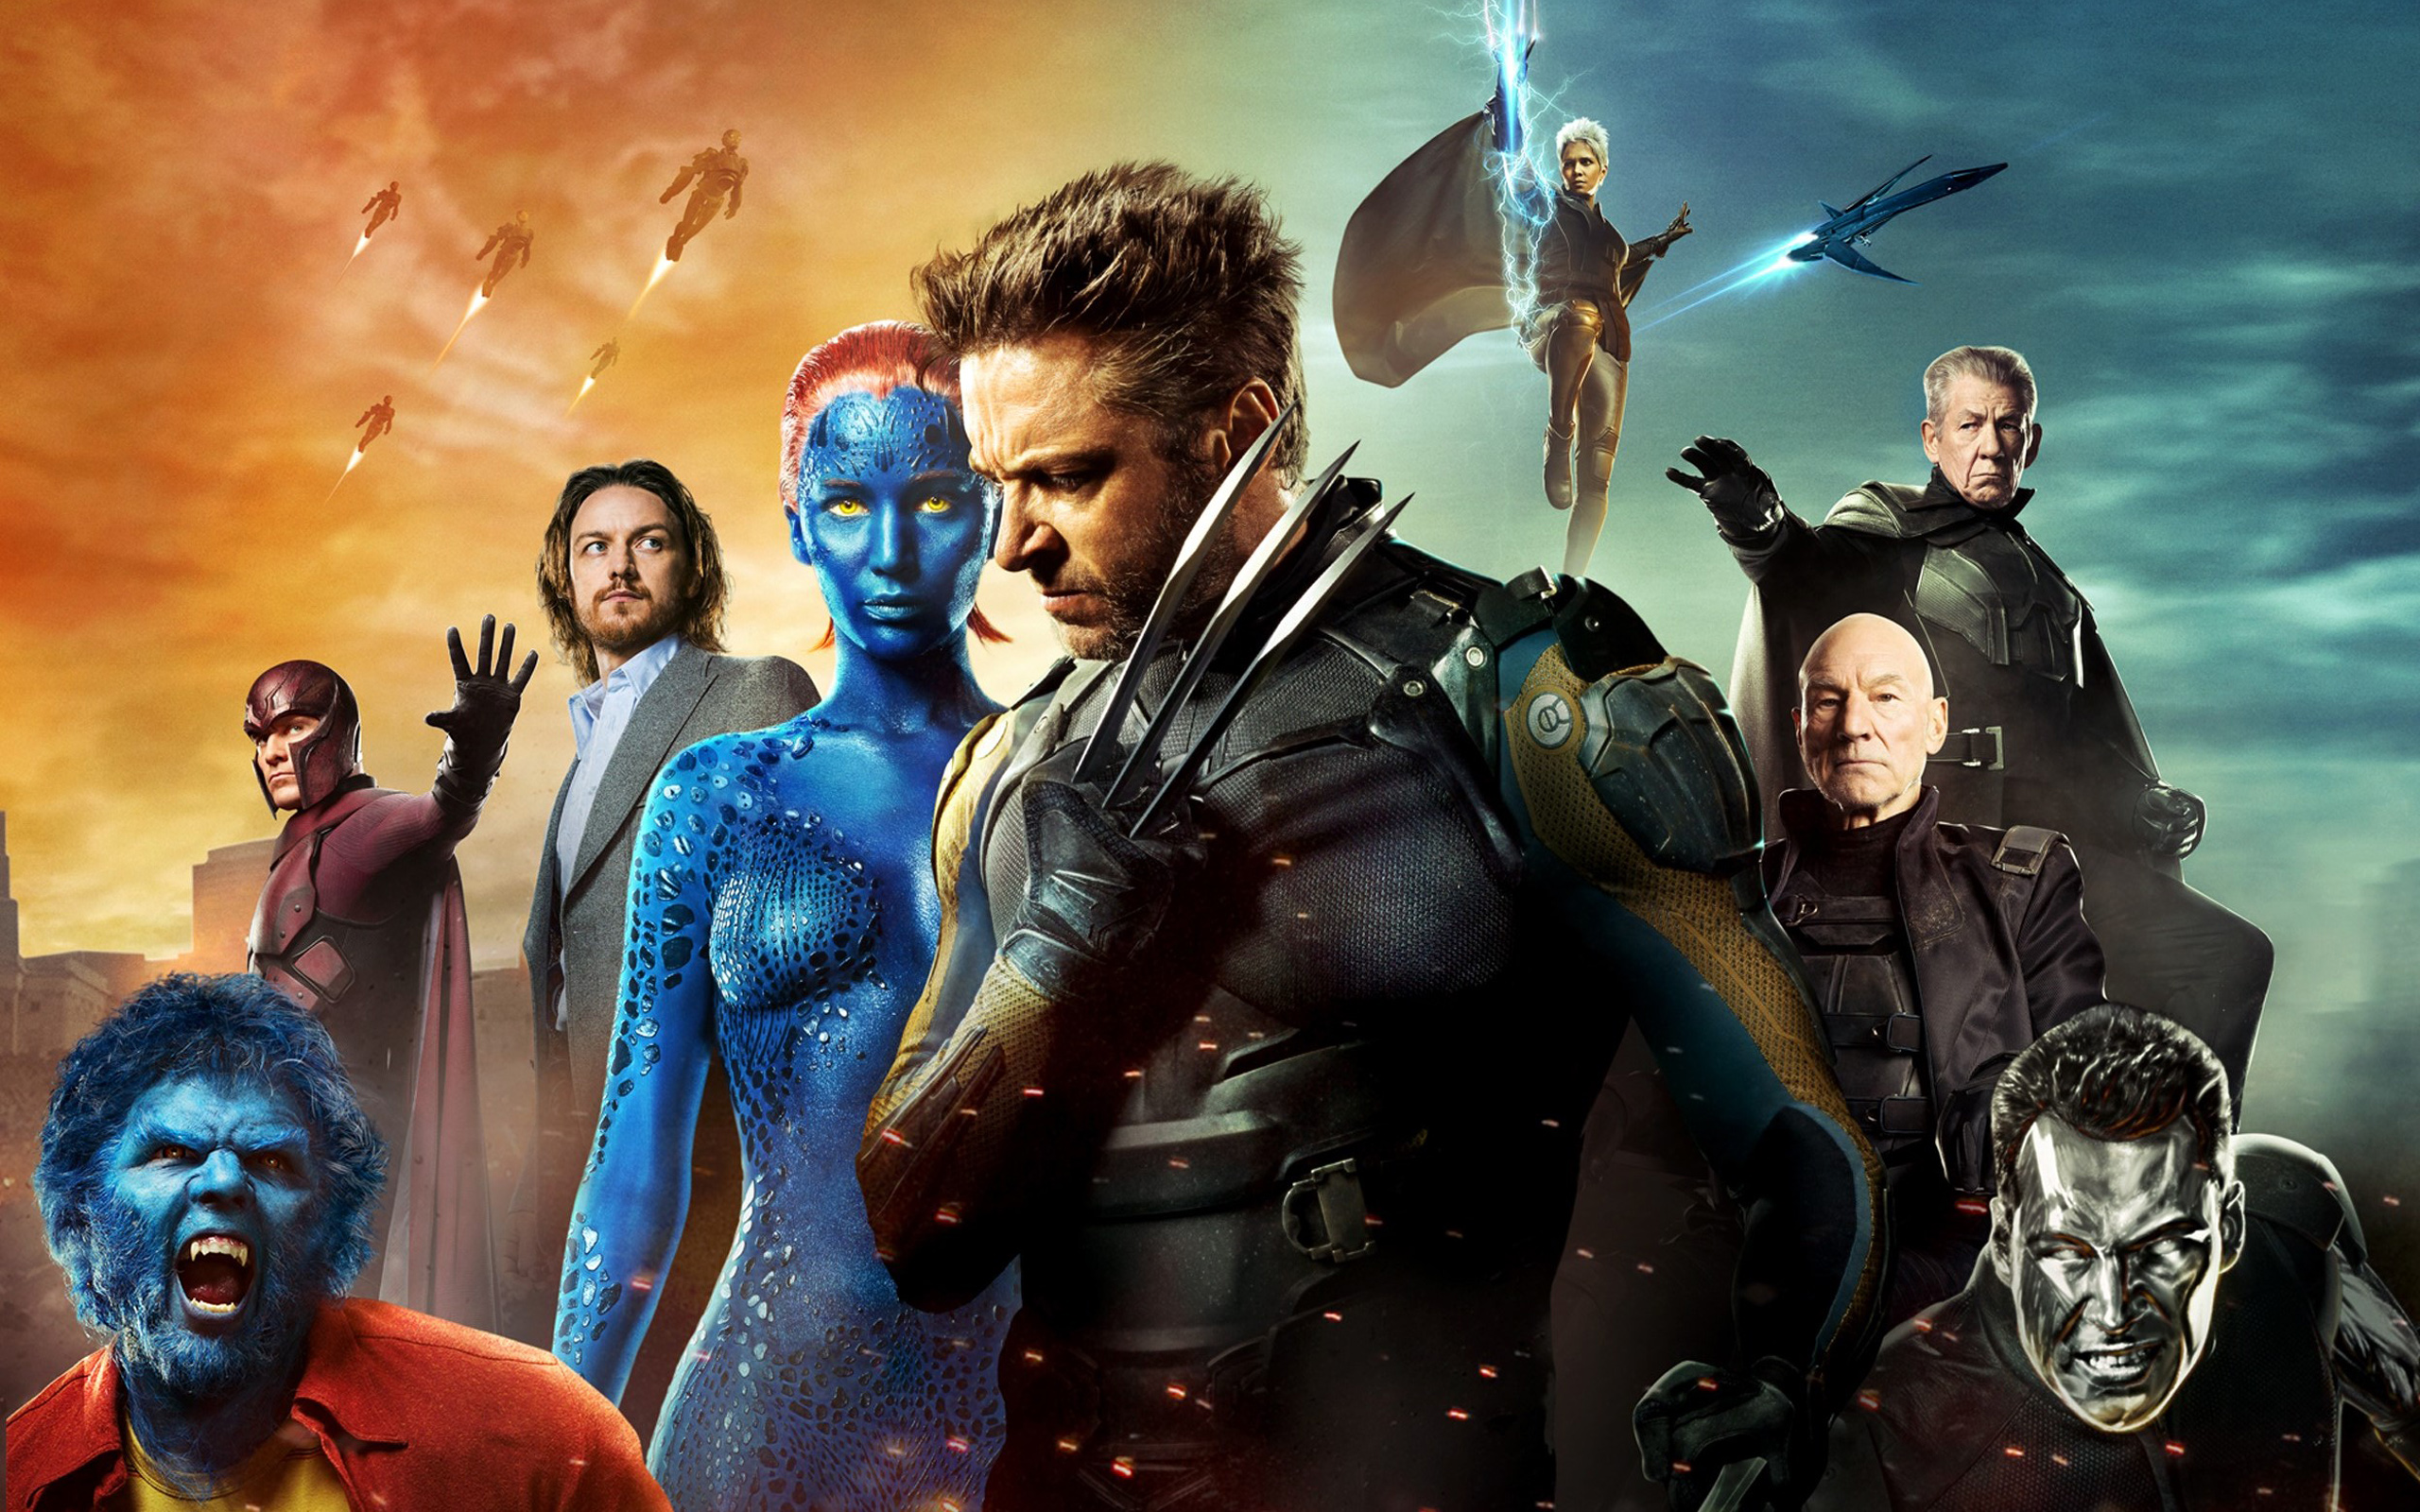 Men Days of Future Past Poster Wallpapers HD Wallpapers 2560x1600